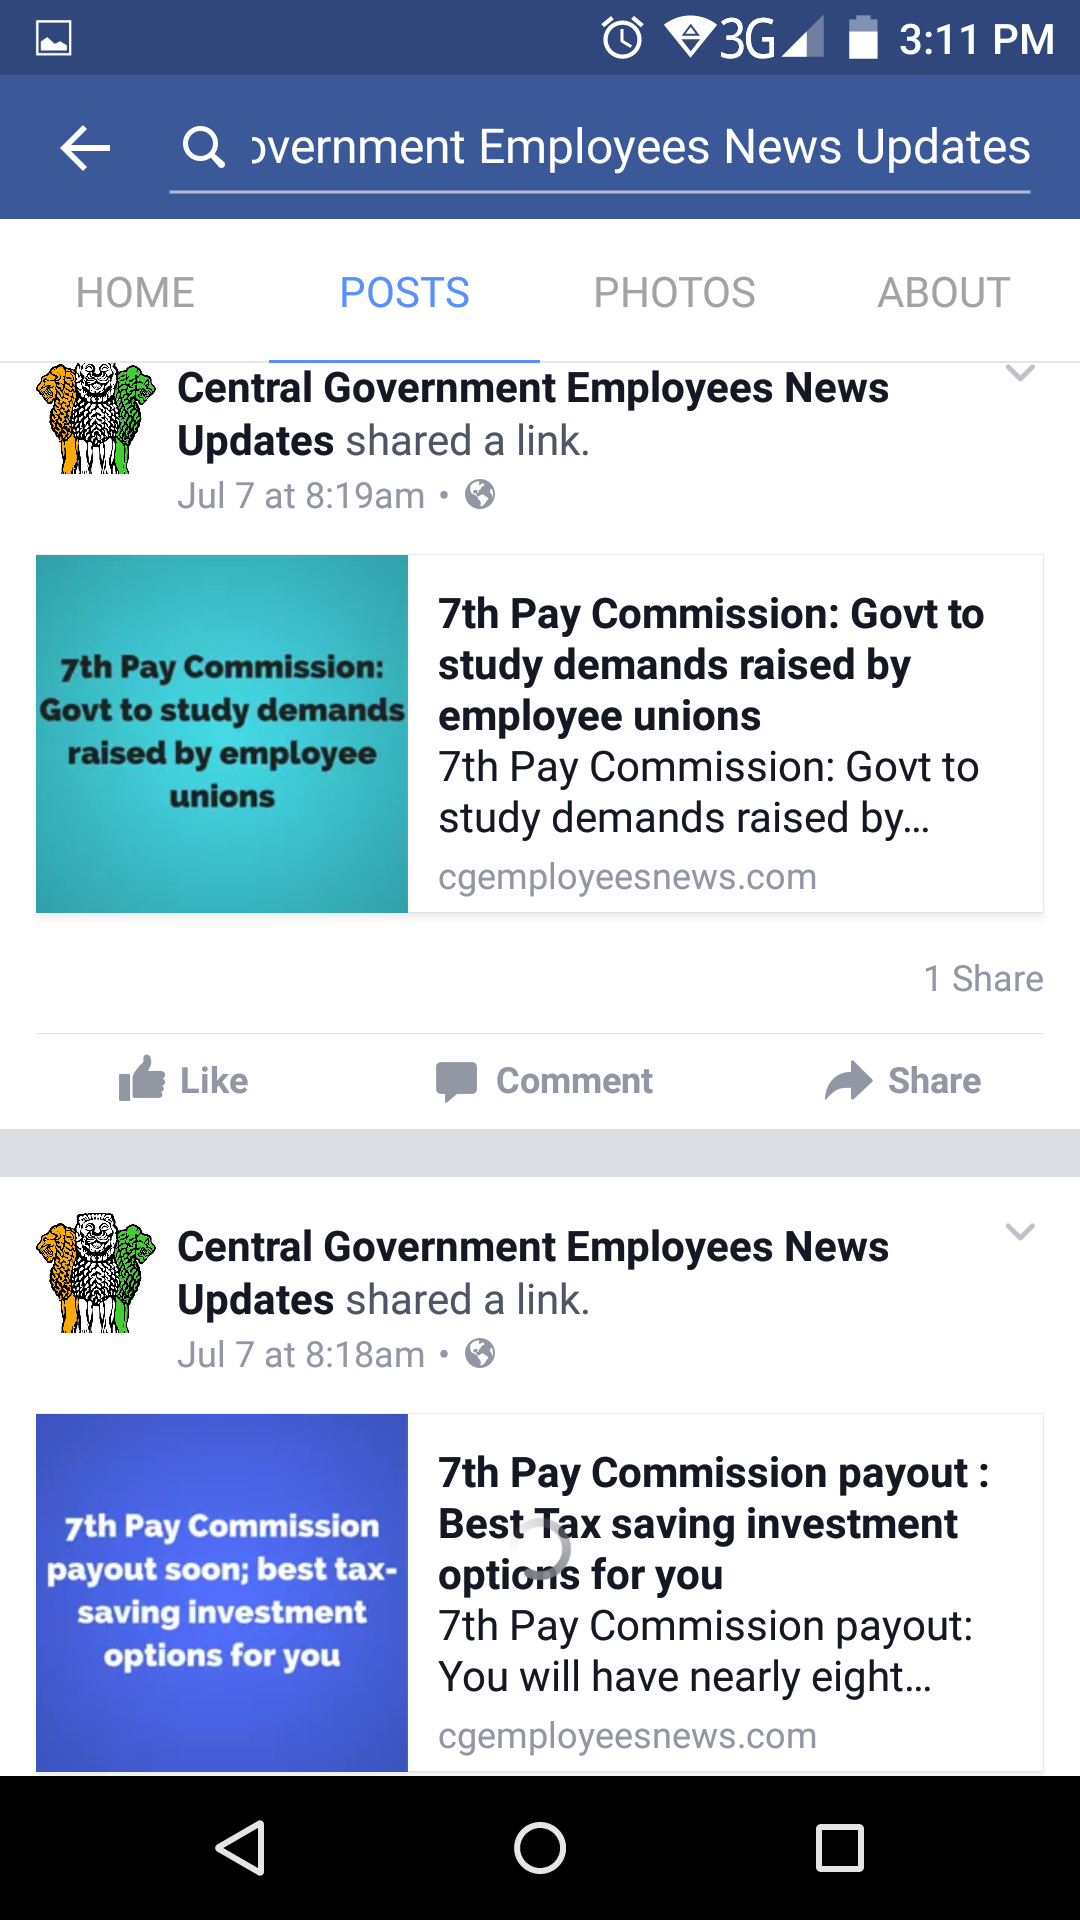 Central Government Employees News Android App - Download